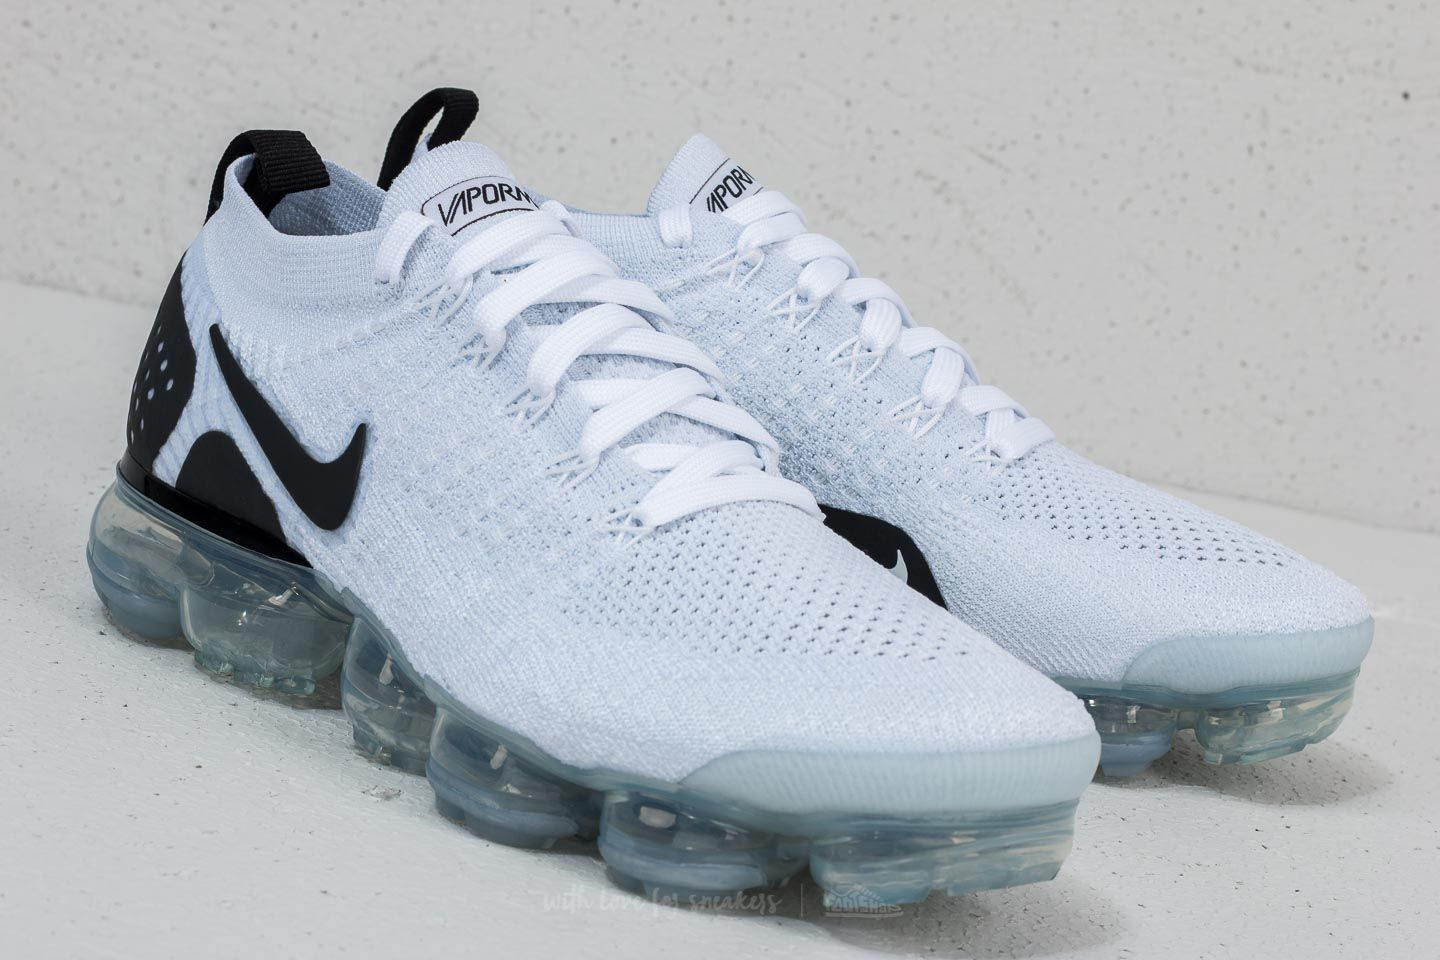 REVIEW & ON FEET Nike Vapormax Flyknit 2 YouTube